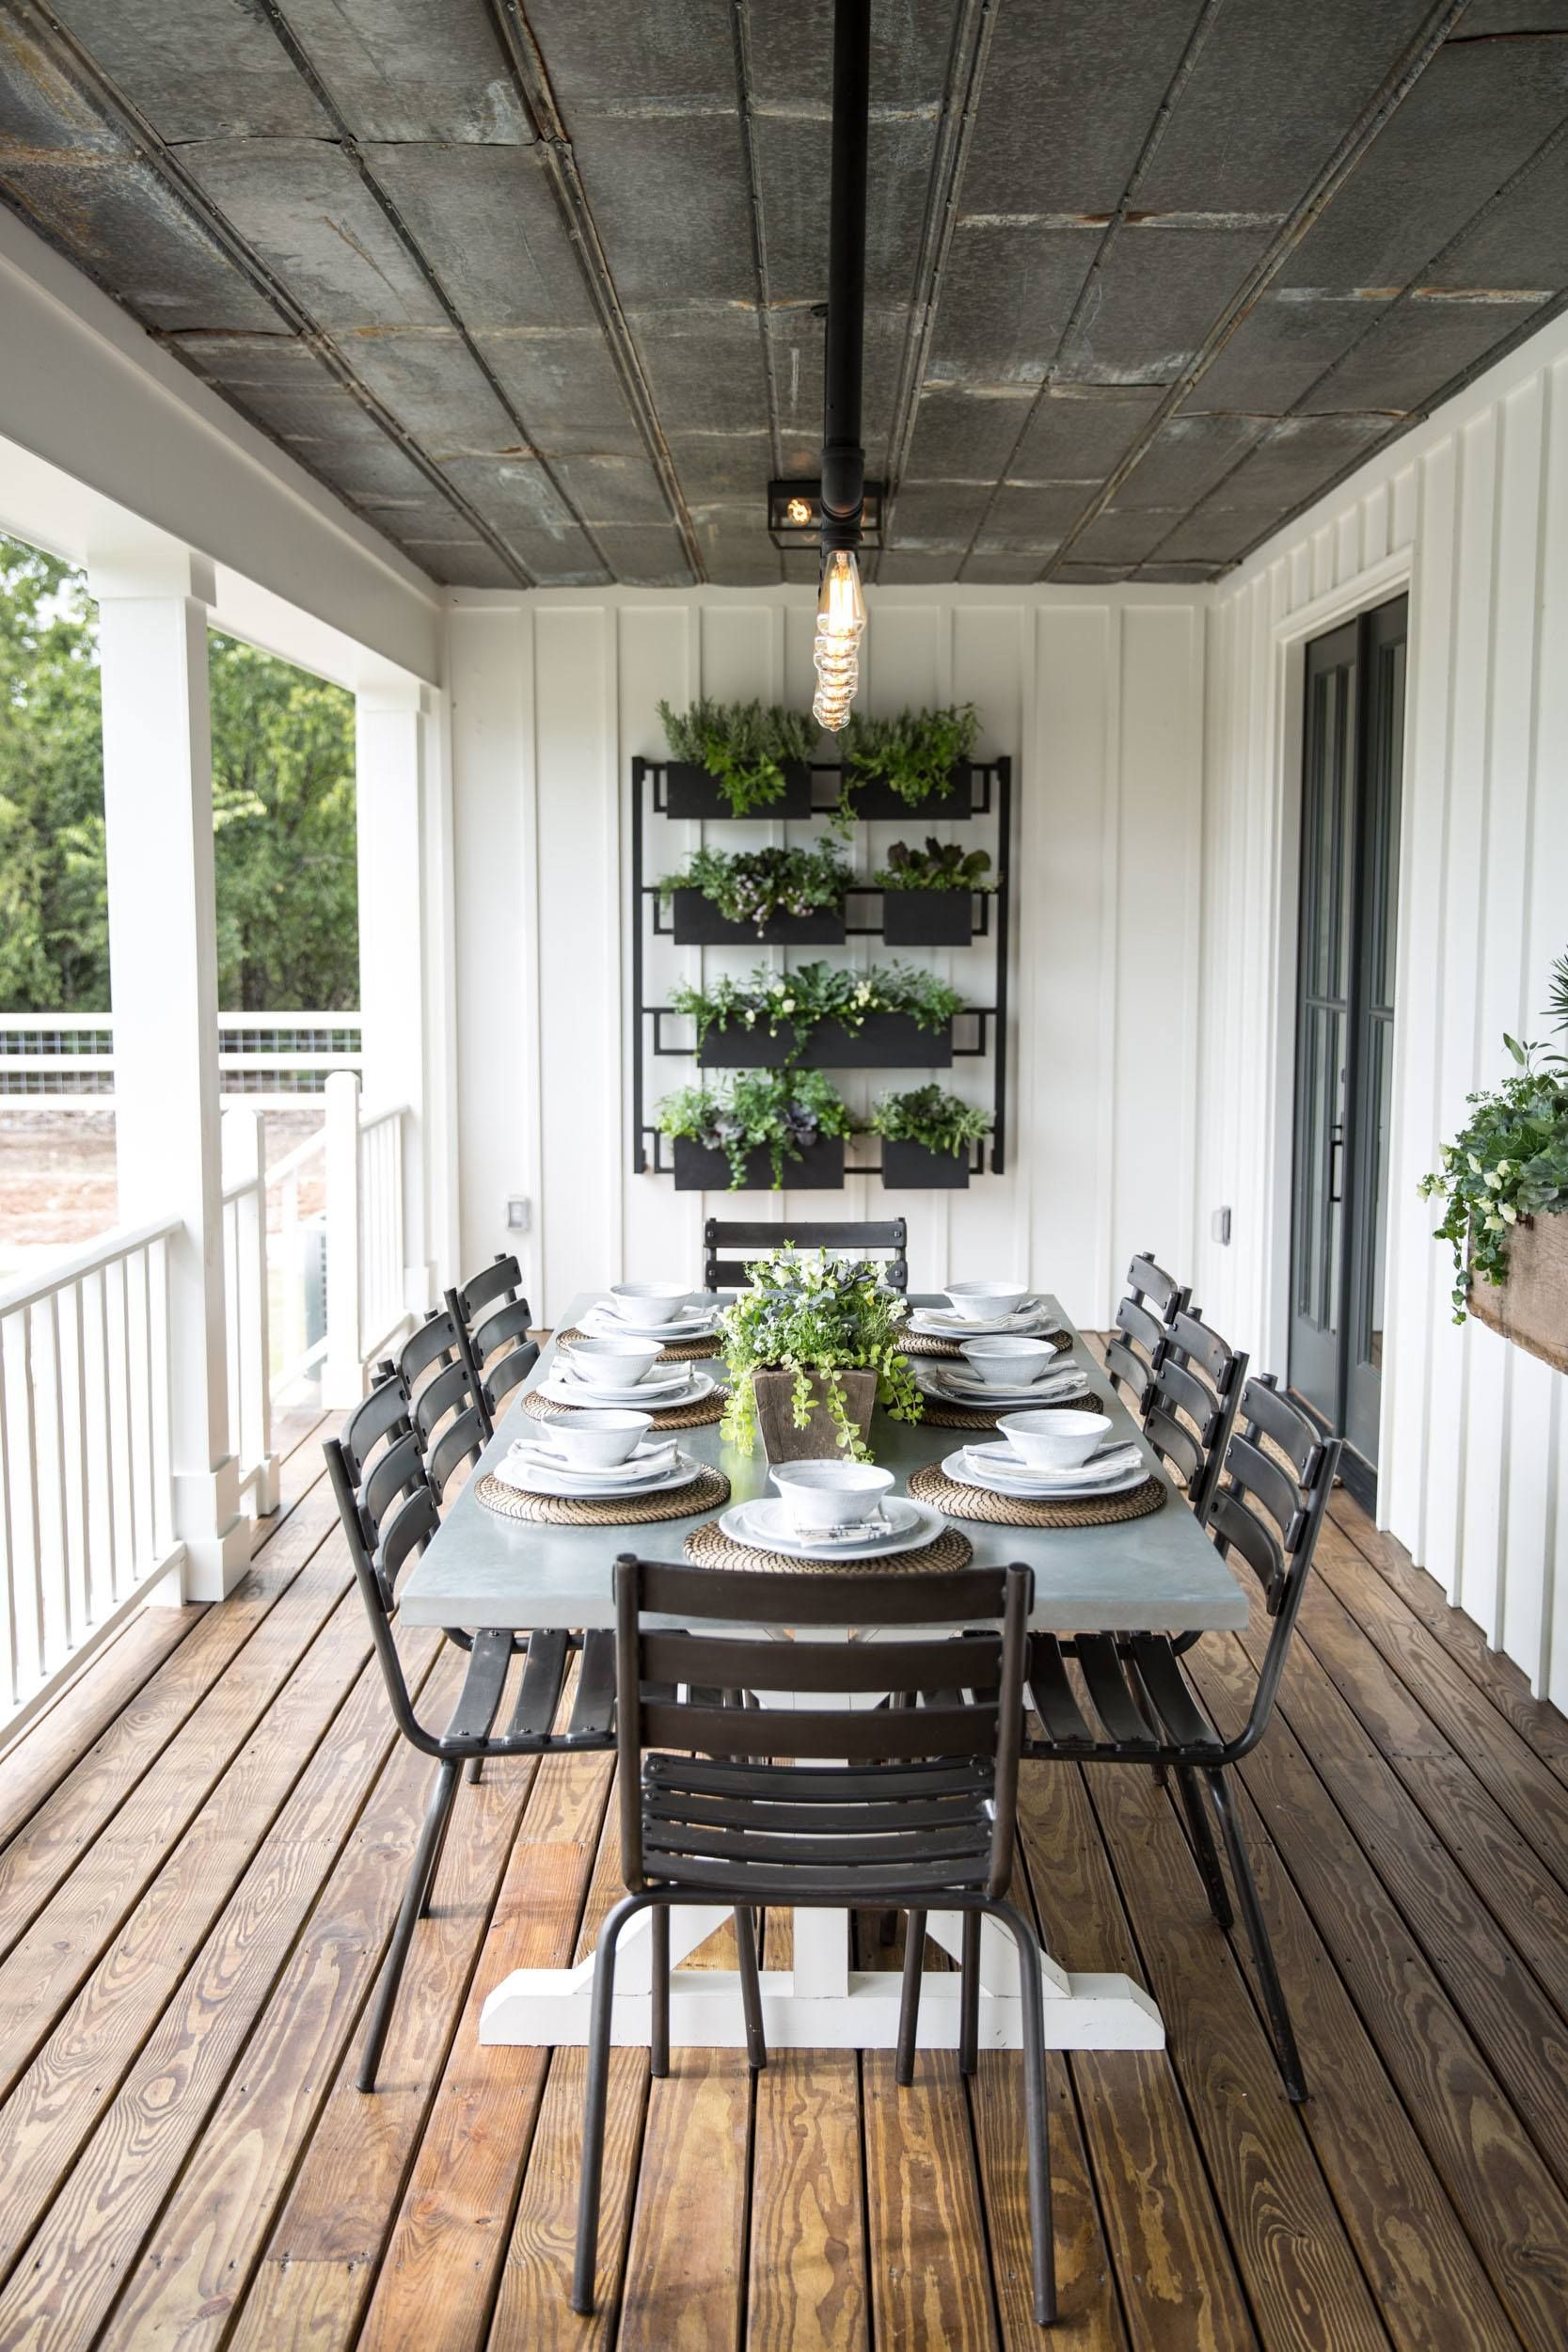 Fixer Upper Season 4 Episode 16 The Little Shack On Prairie Chip And Joanna Gaines Waco Tx Outdoor Es